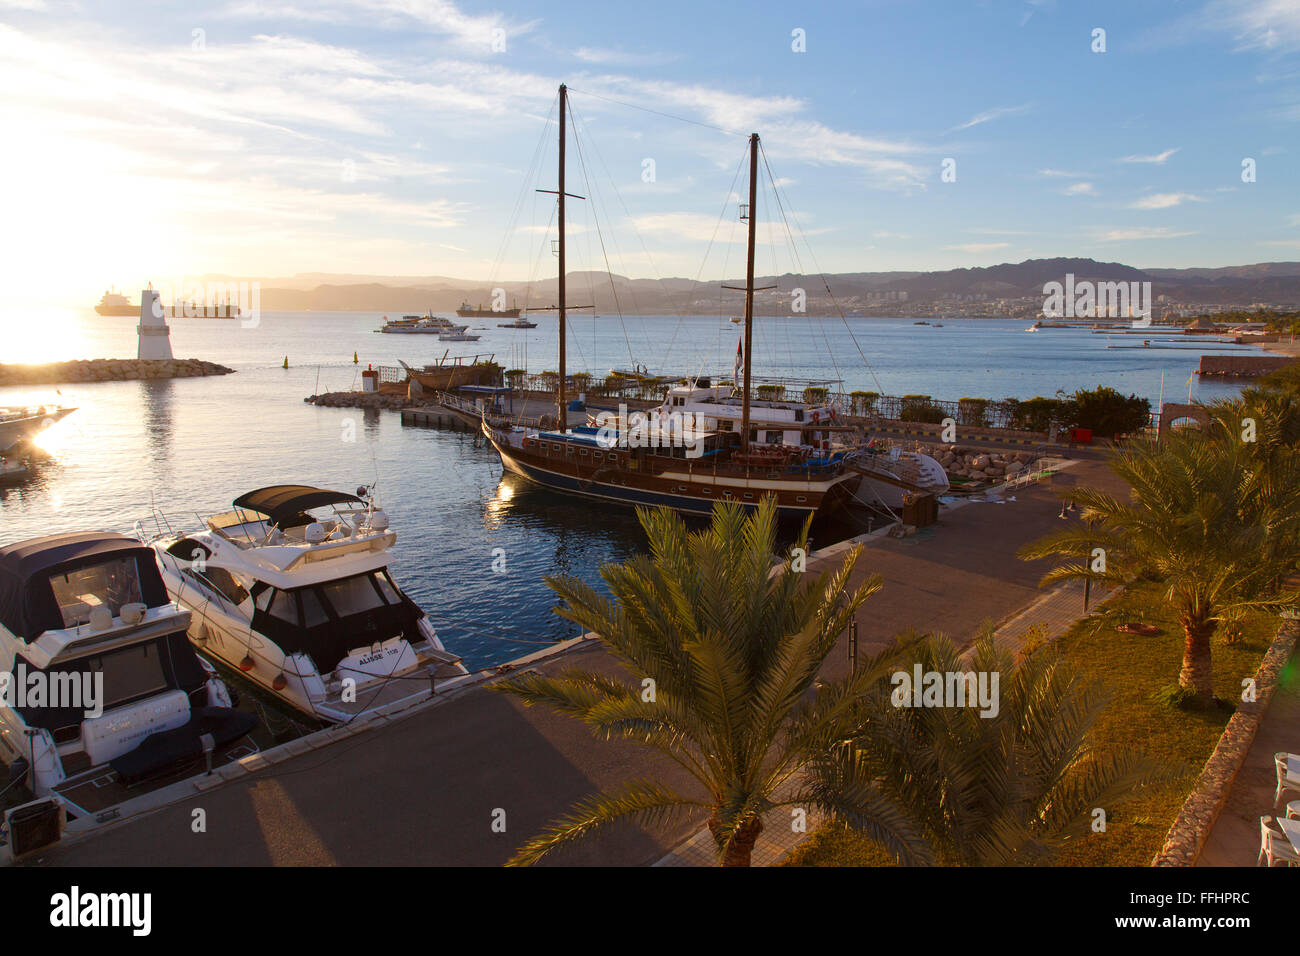 The gulf of Aqaba , by the red sea - Stock Image